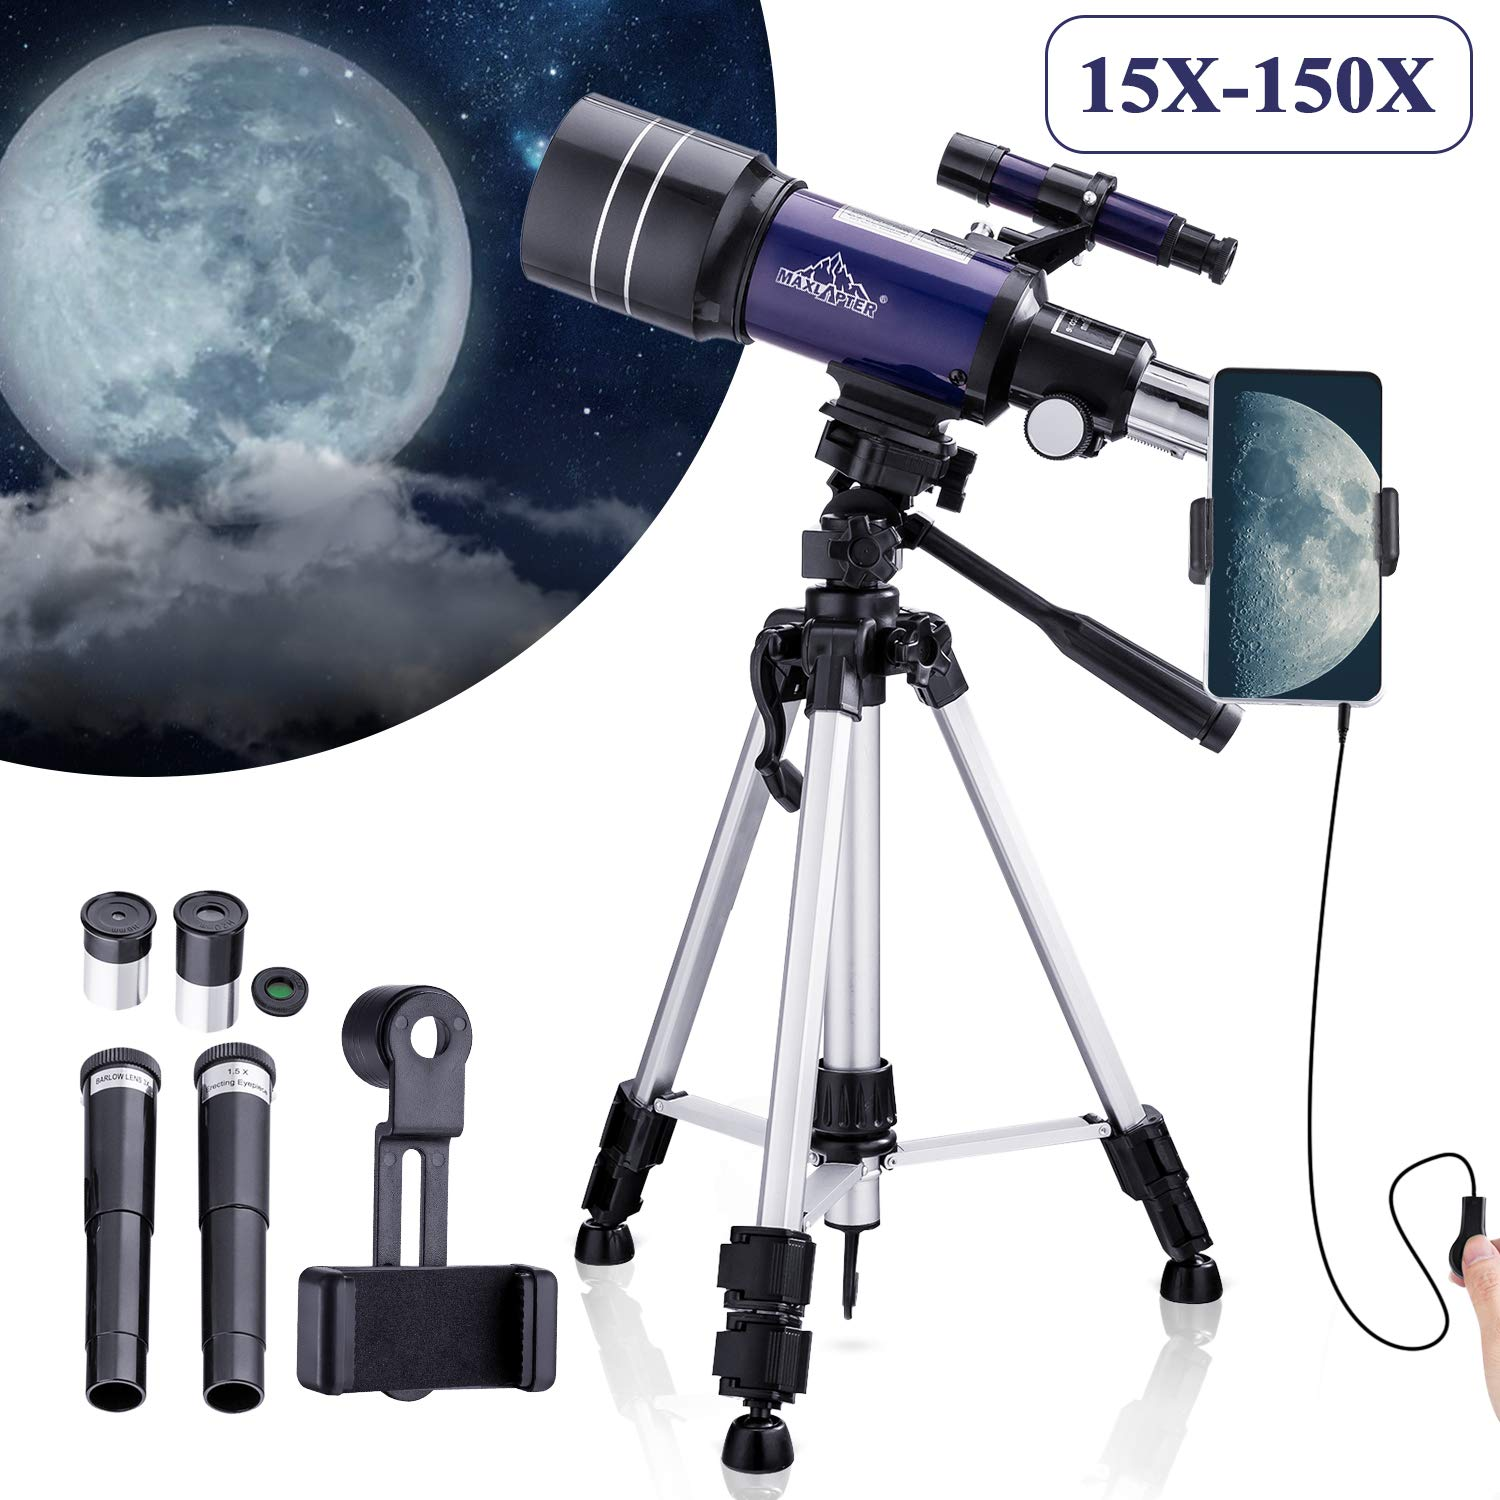 MAXLAPTER Telescope - Portable Travel Scope for Astronomy Beginners Kids, 300/70 HD Large View Telescopes with Camera Wire Shutter & Smartphone Adapter, Backpack-Blue by MAXLAPTER